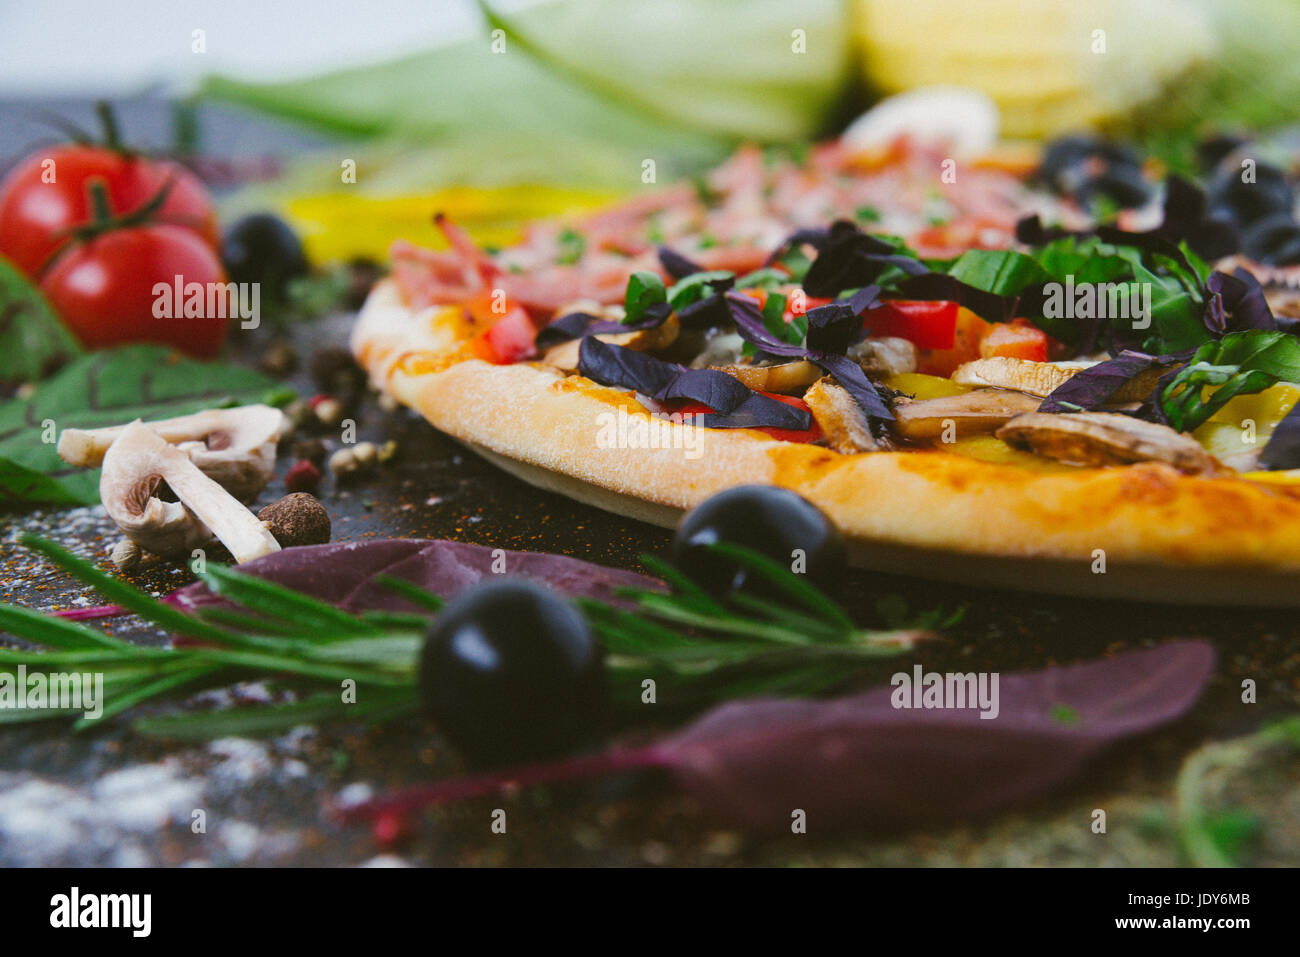 Italian pizza with mozzarella, black olives, prosciutto and tomatoes - Stock Image